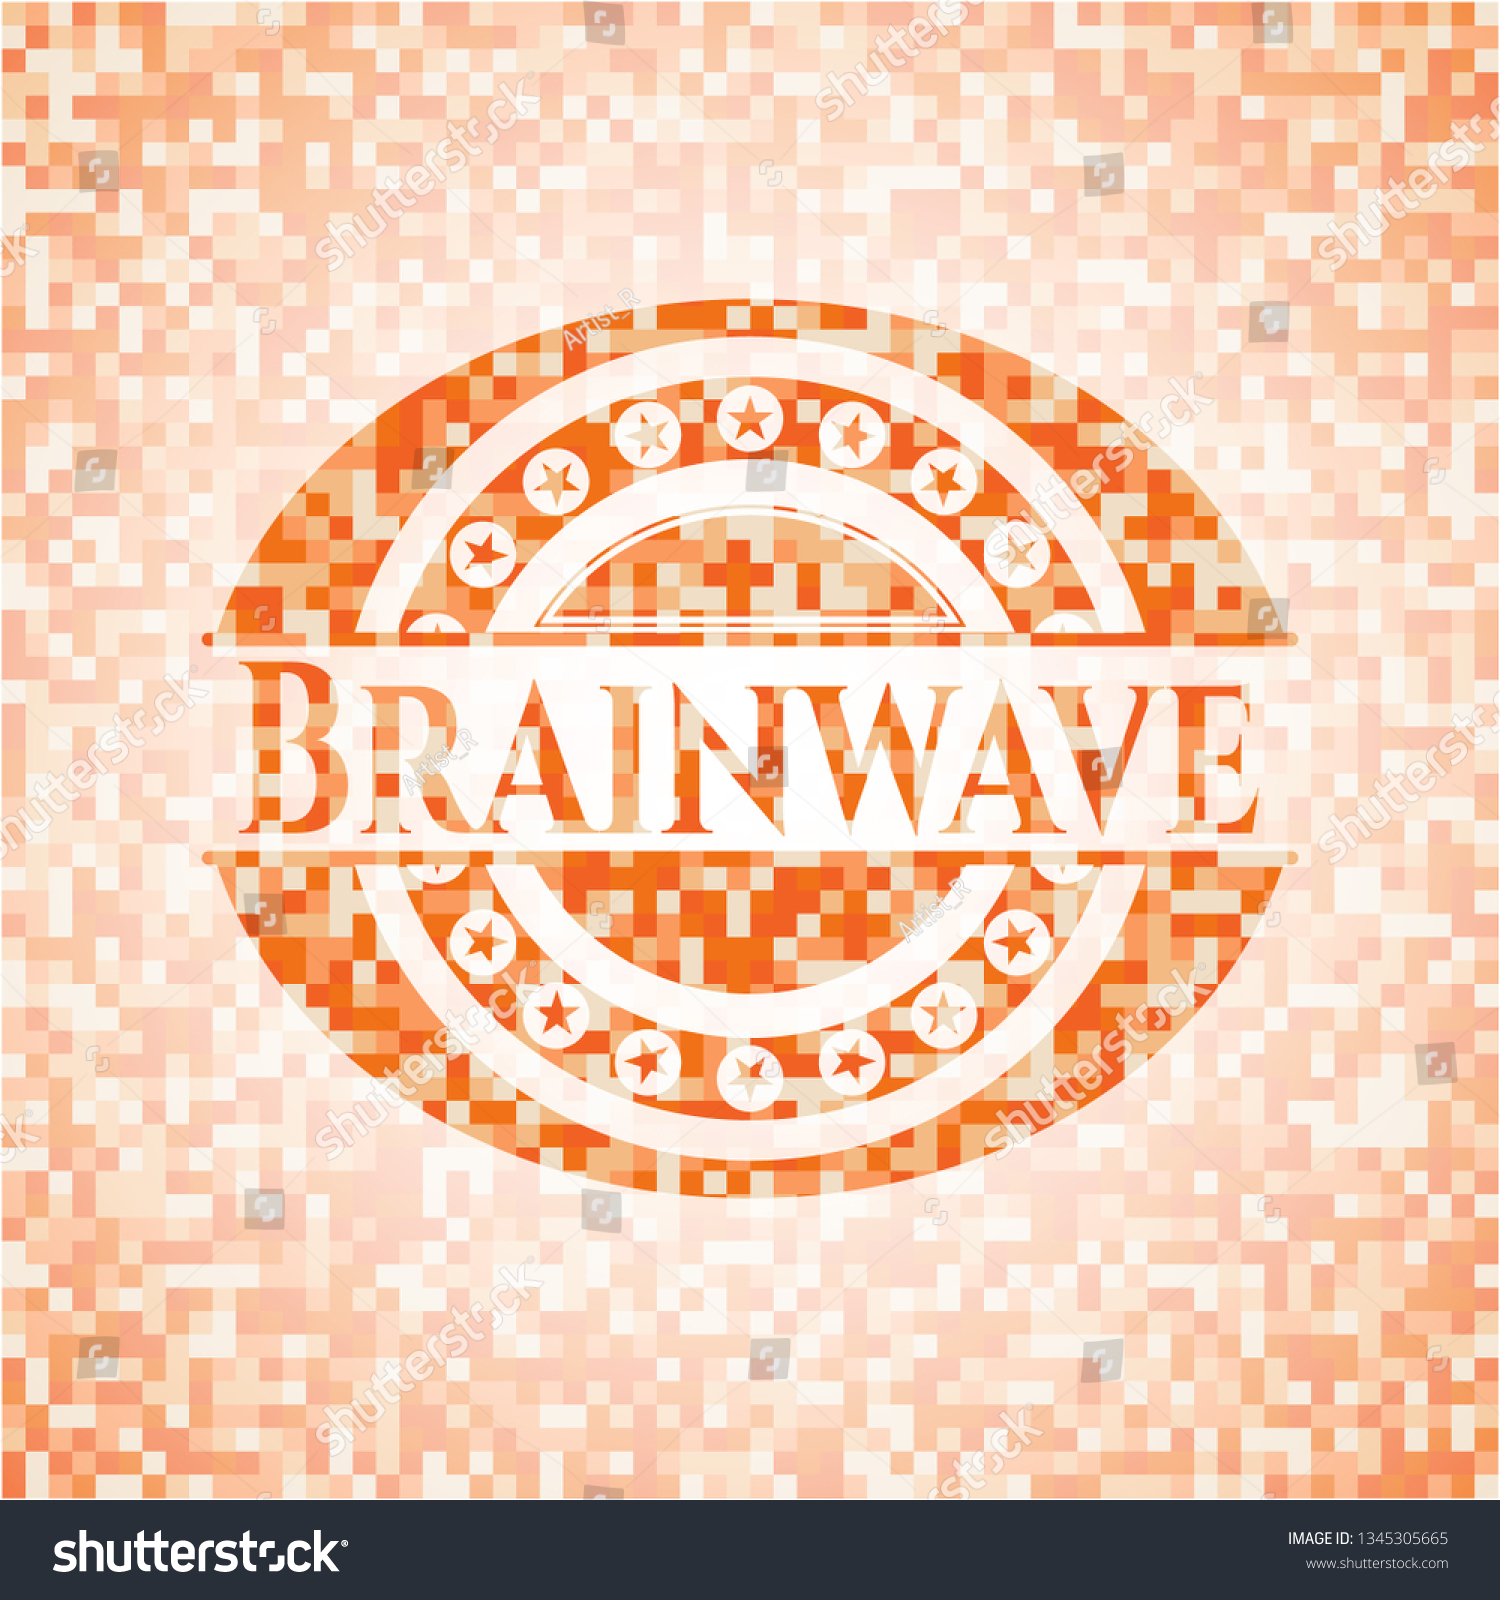 Brainwave Abstract Orange Mosaic Emblem Background Stock Vector 1500x1600